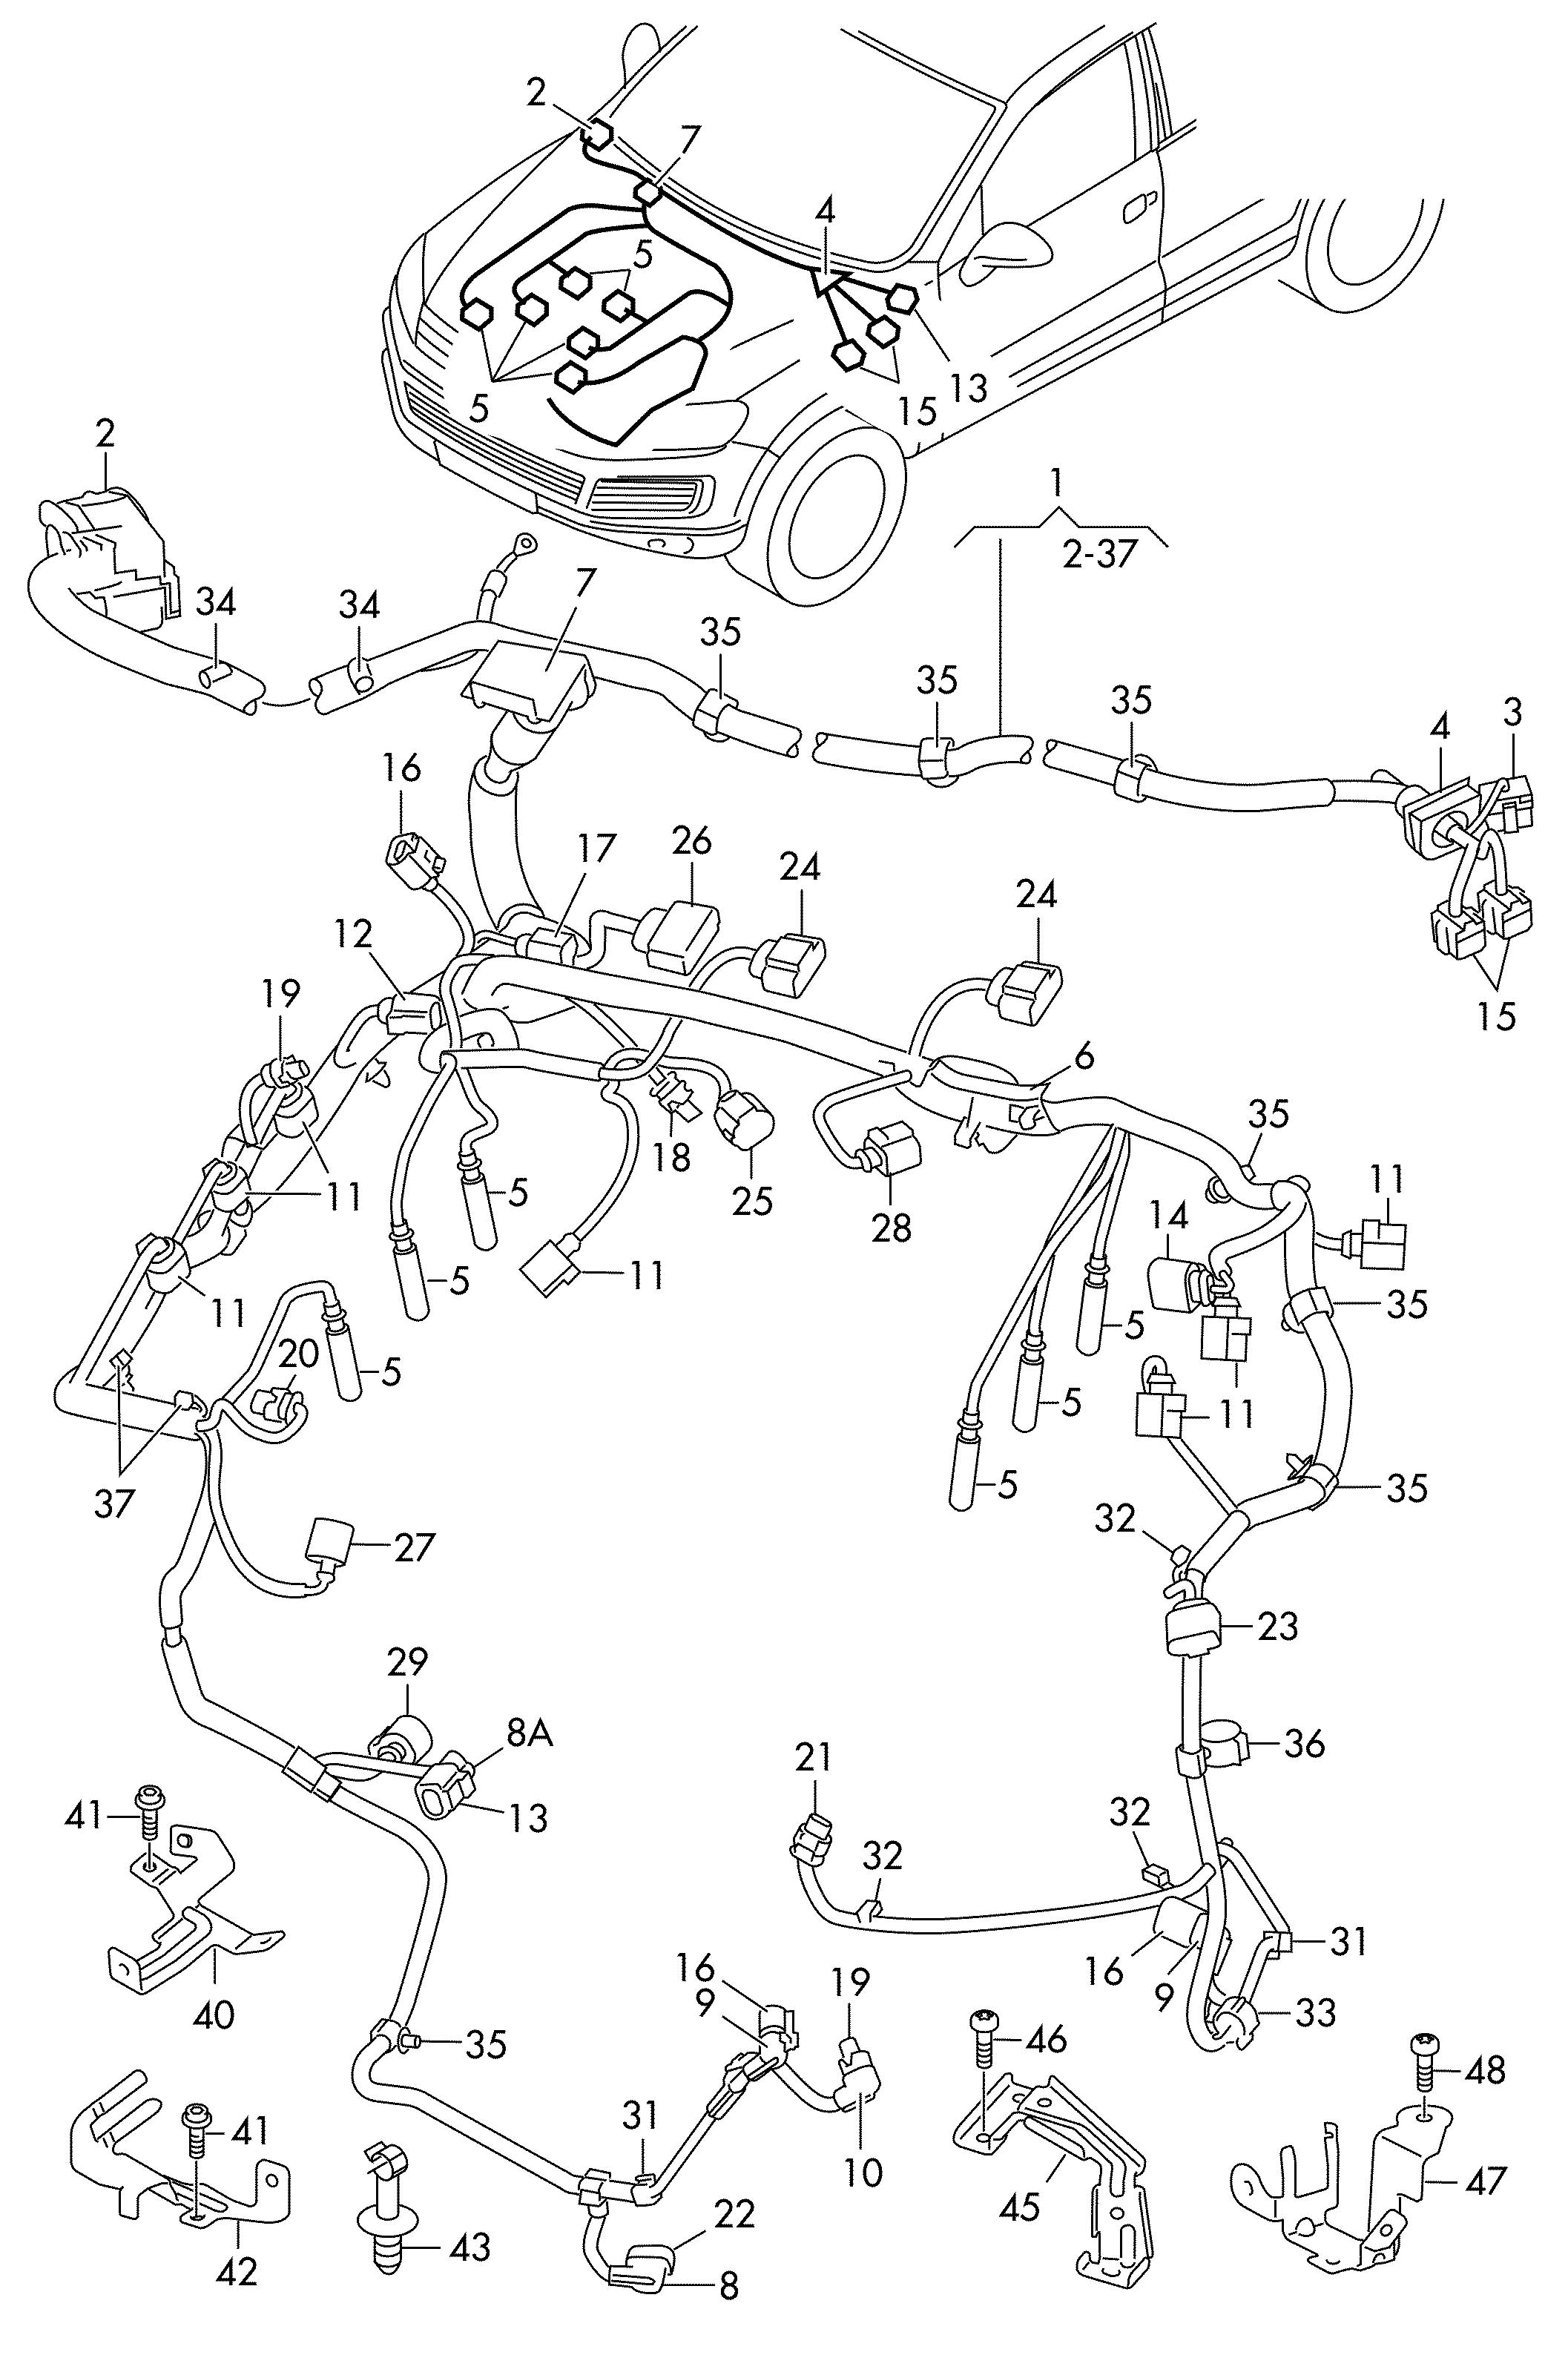 Wiring Harness 2011 Vw Routan 2011 VW Scirocco Wiring